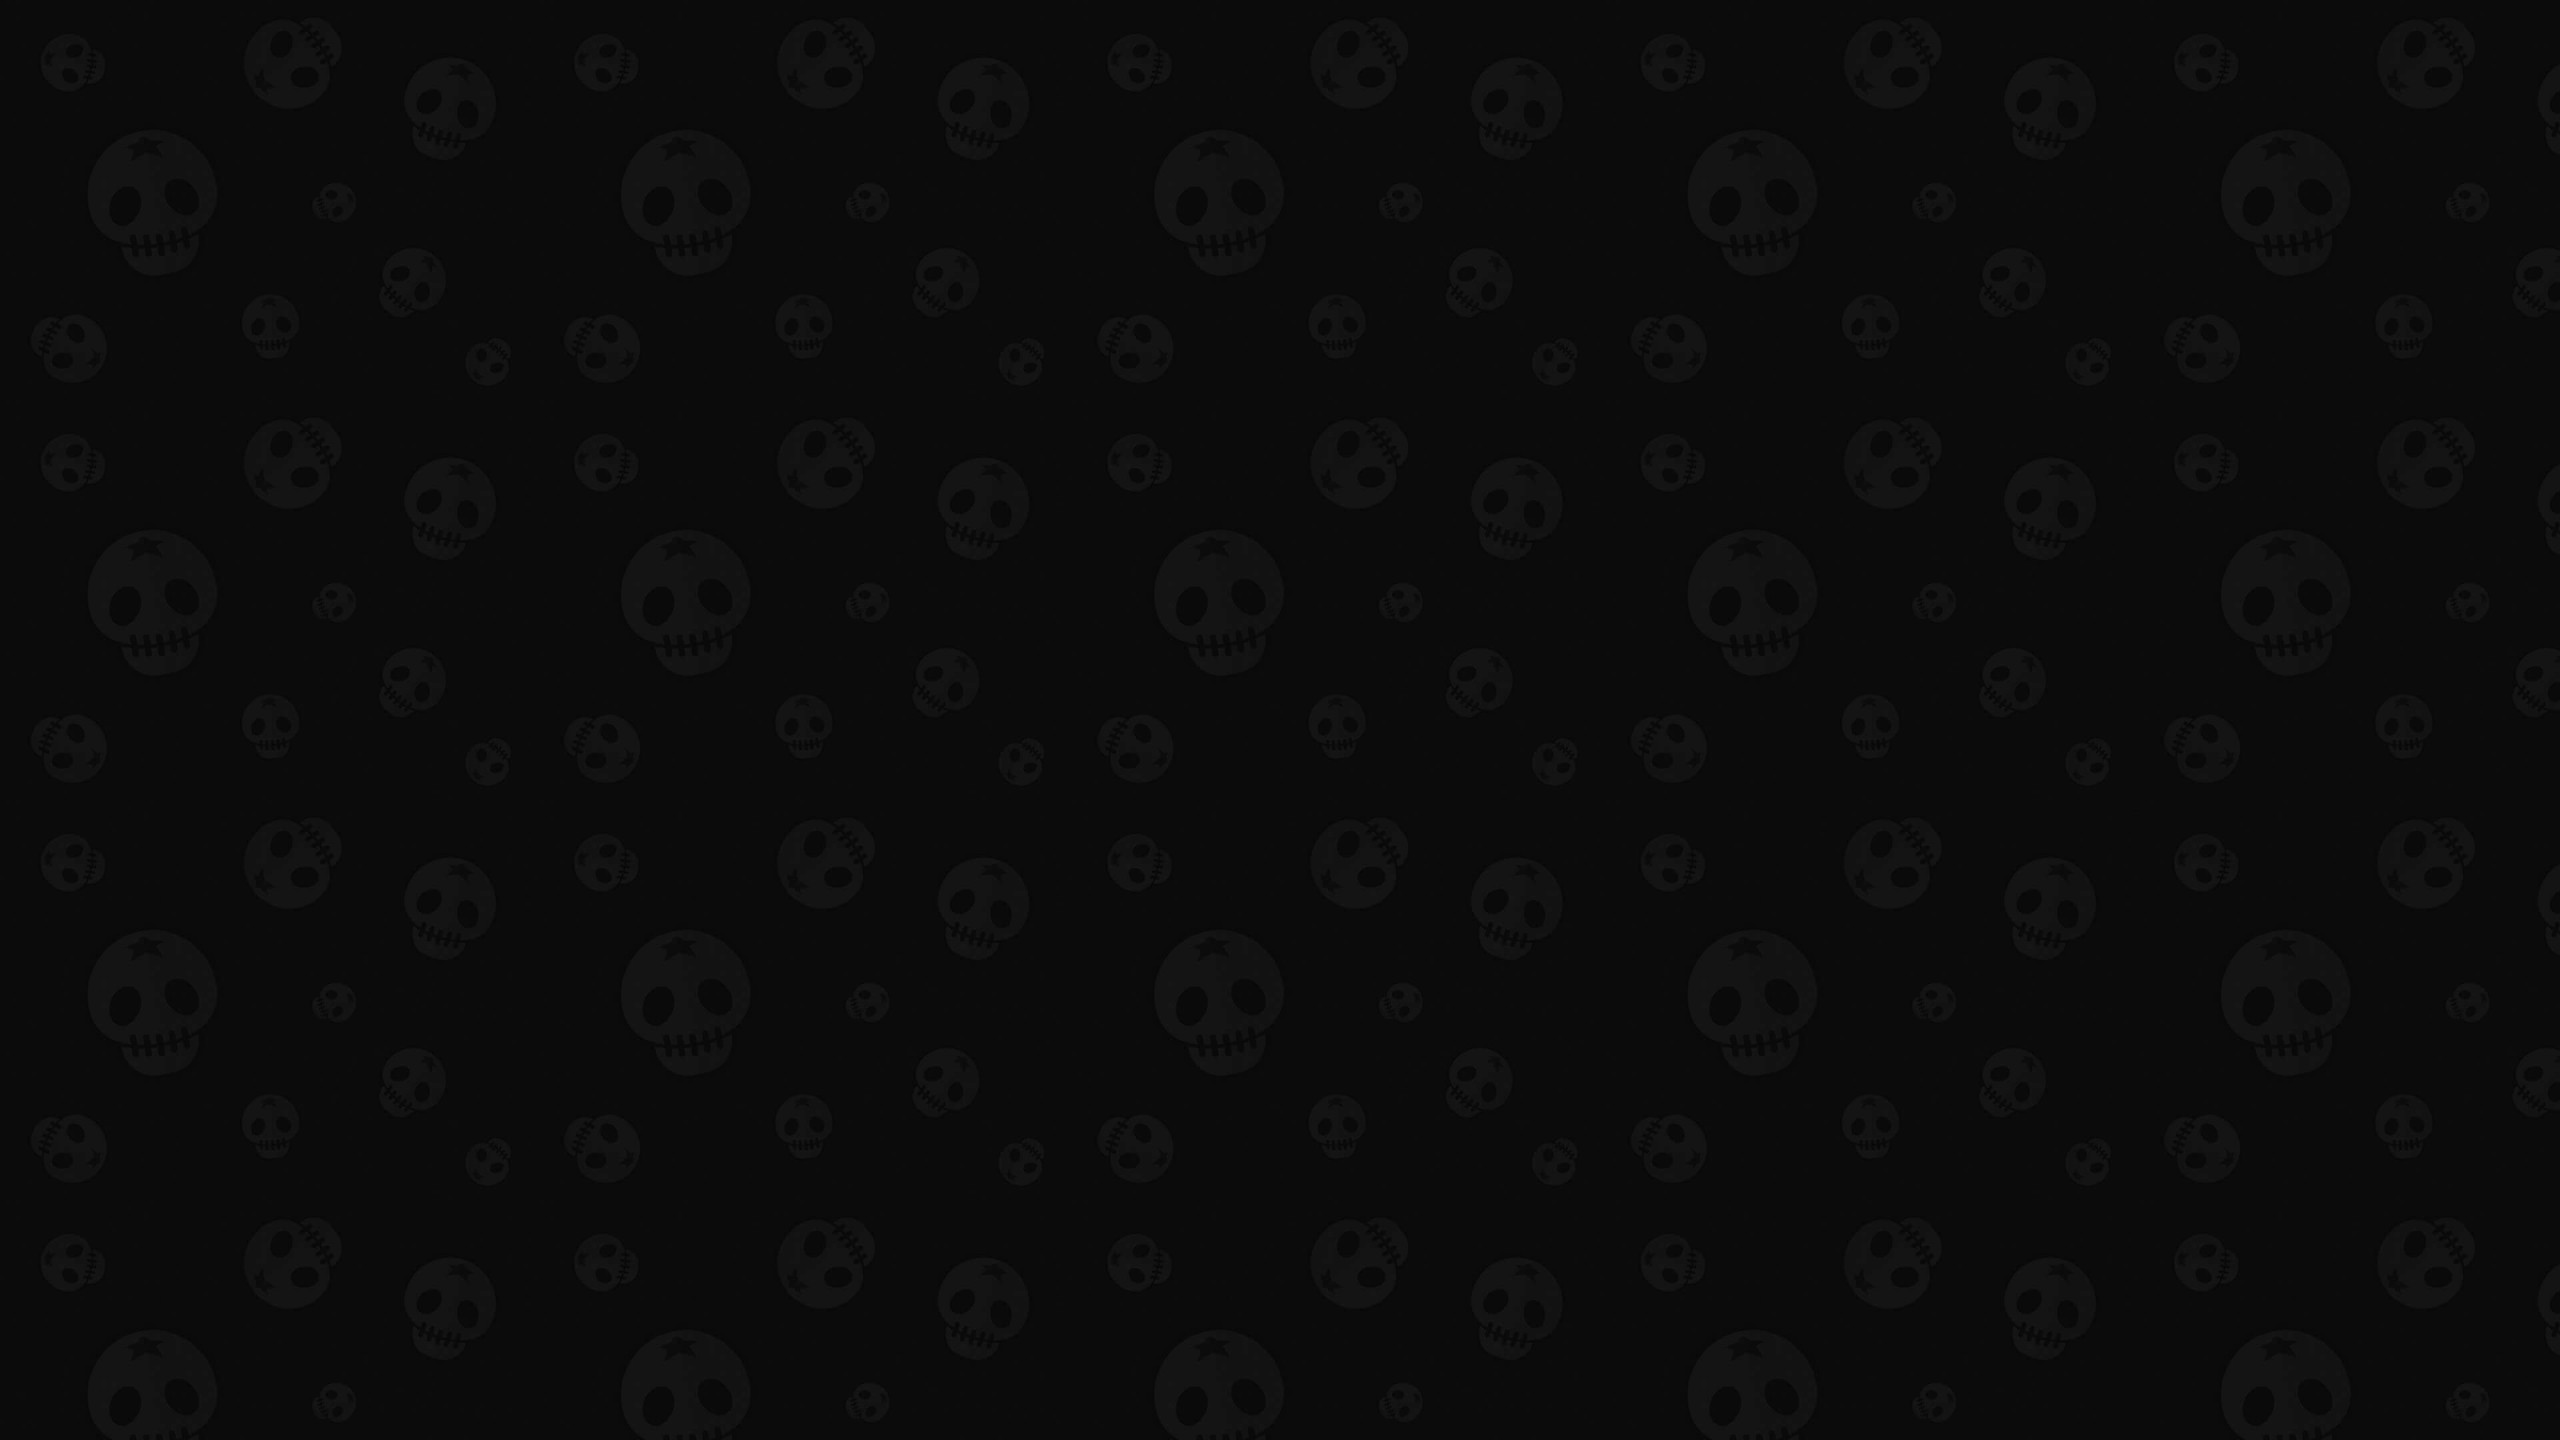 Star Skull Pattern Wallpaper for Social Media YouTube Channel Art